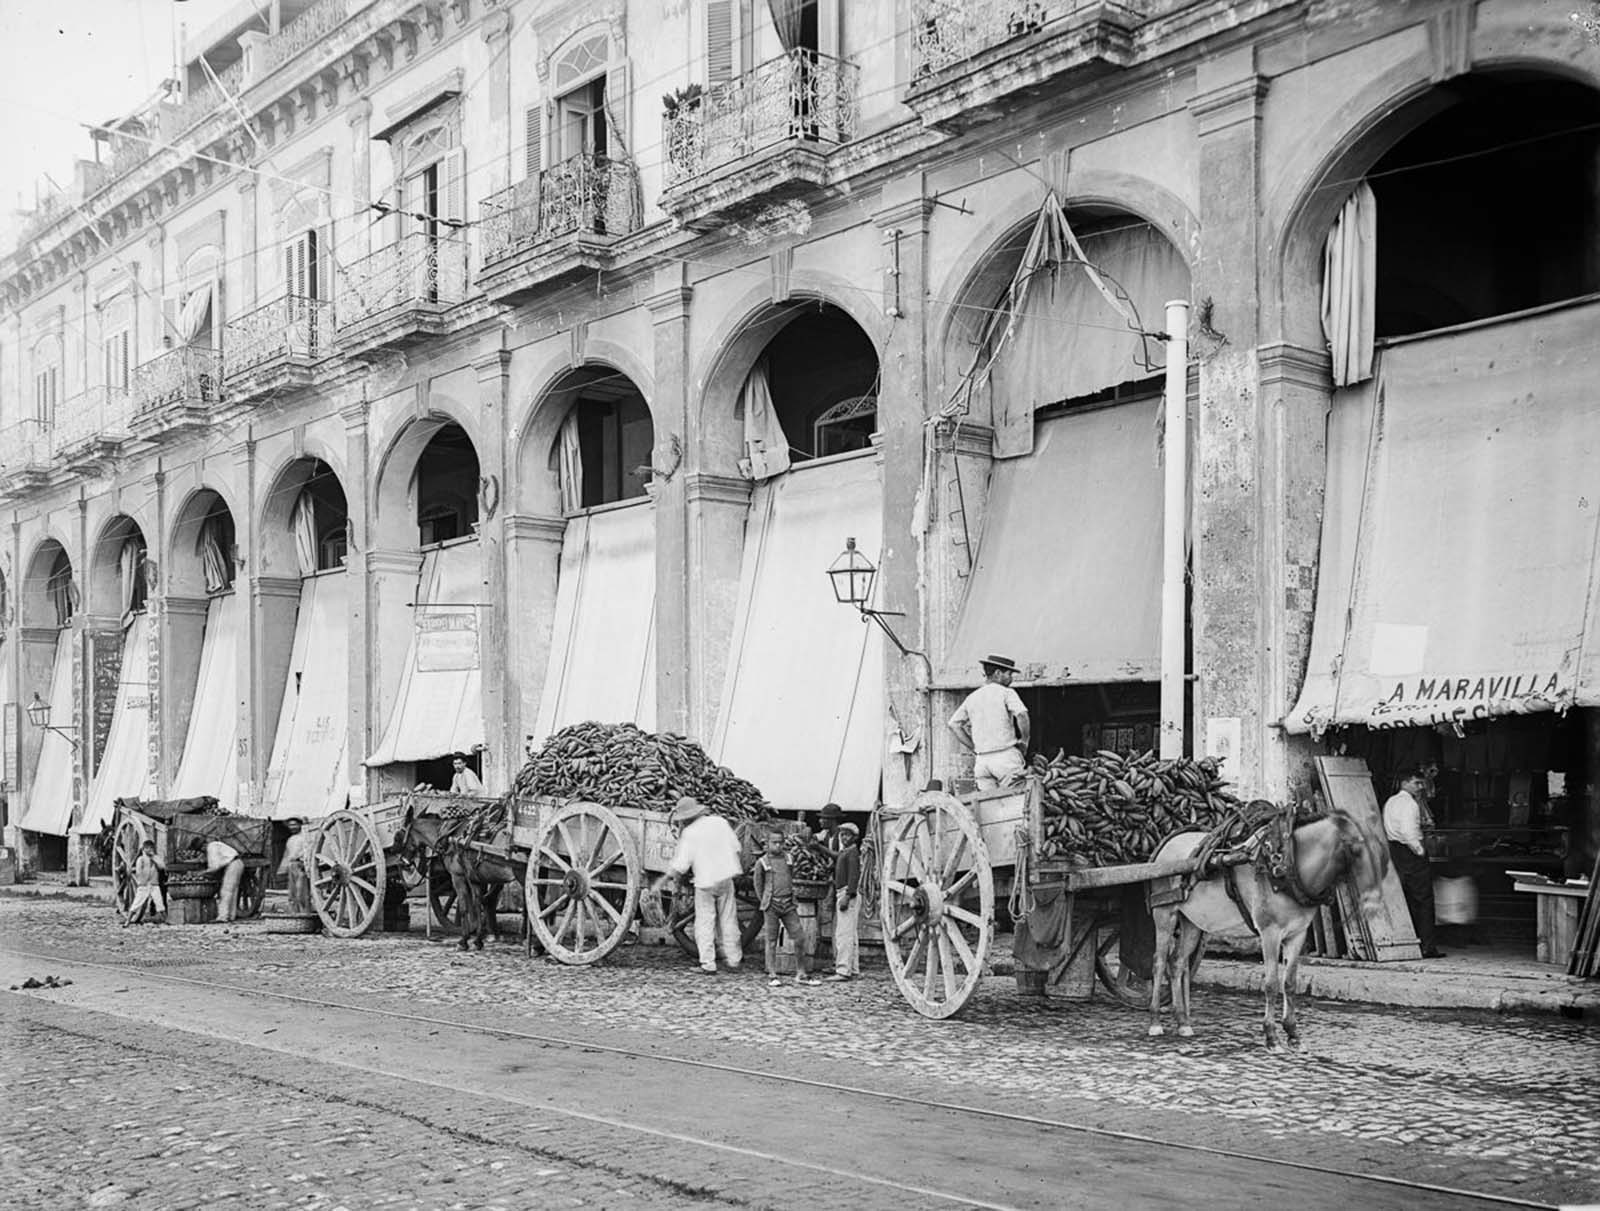 Fruit wagons unload outside a market. 1890.